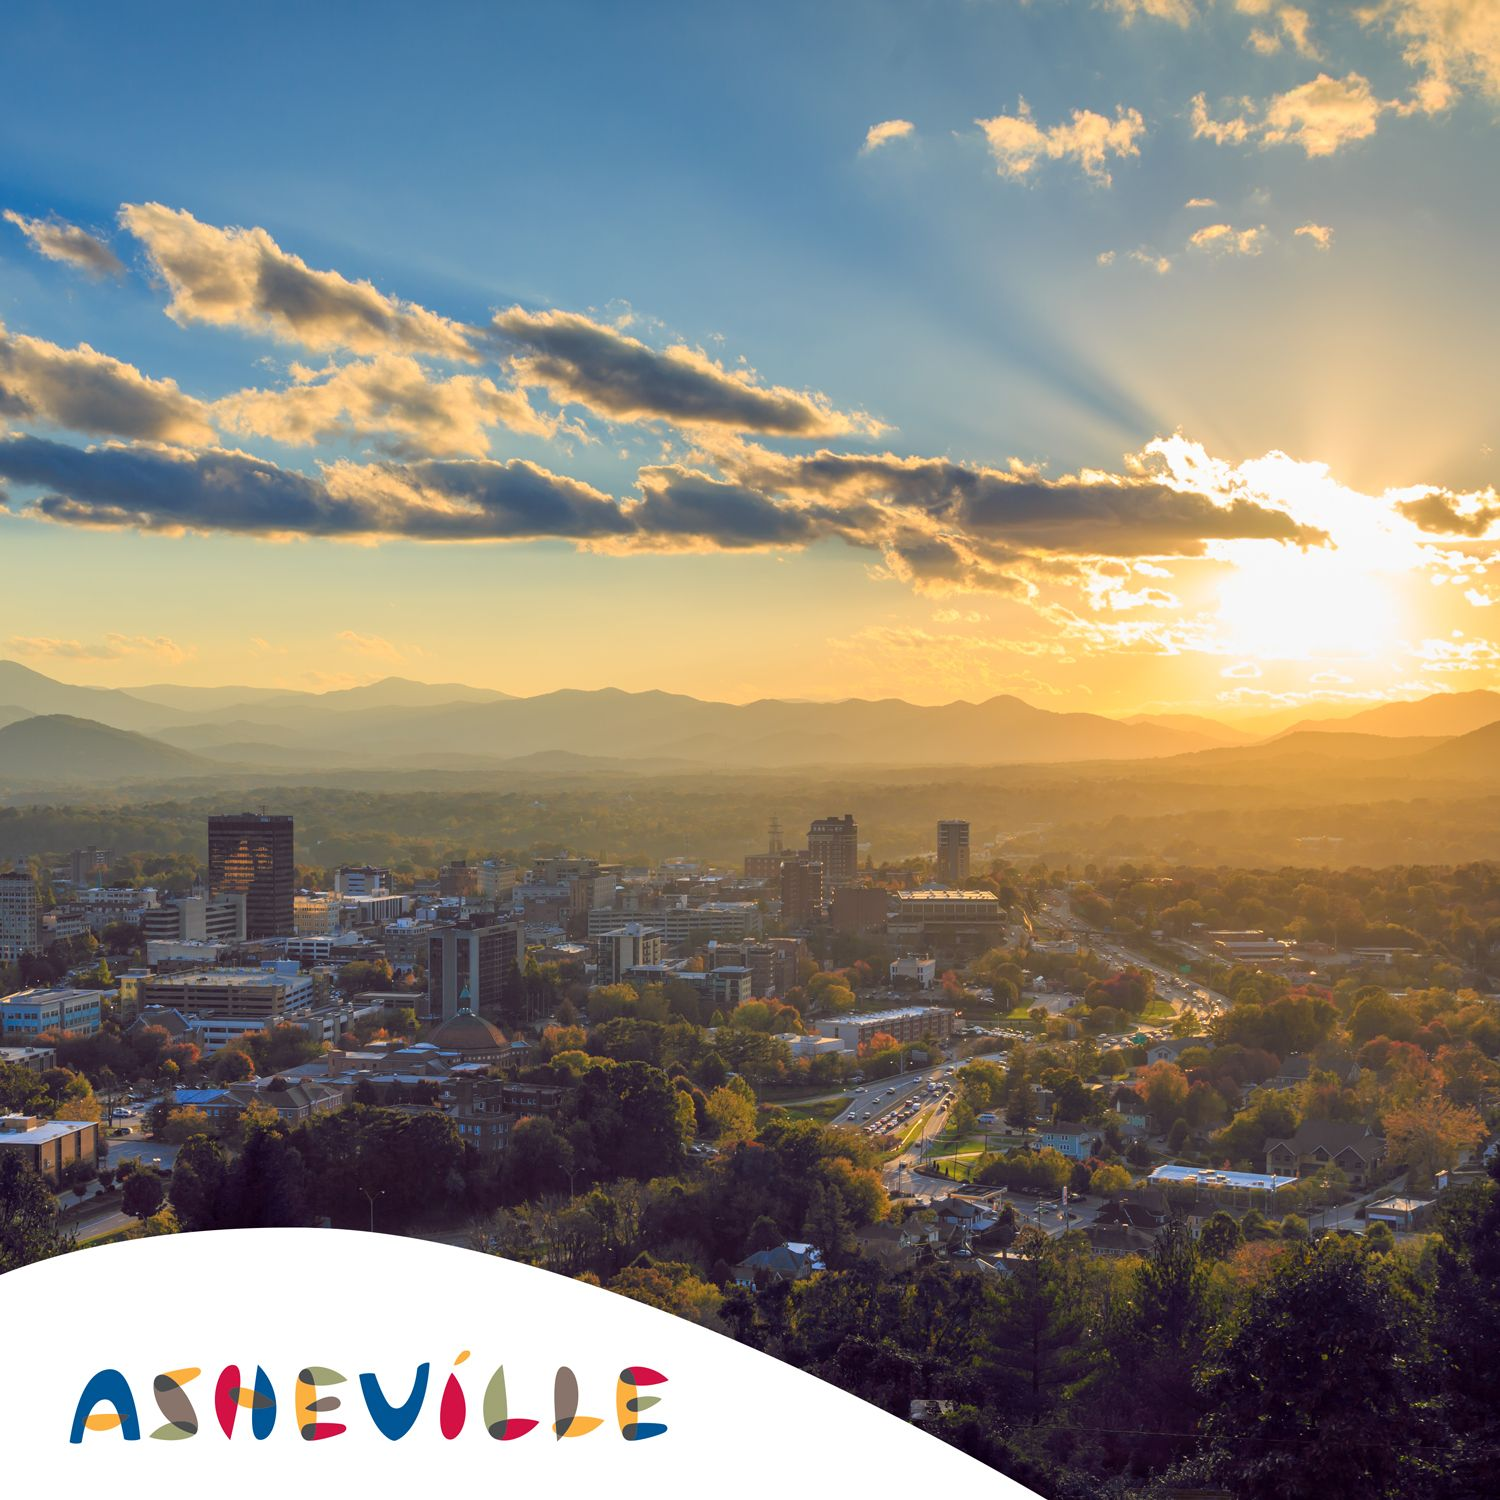 Apartment Finder Asheville: Where To Eat Brunch In Asheville